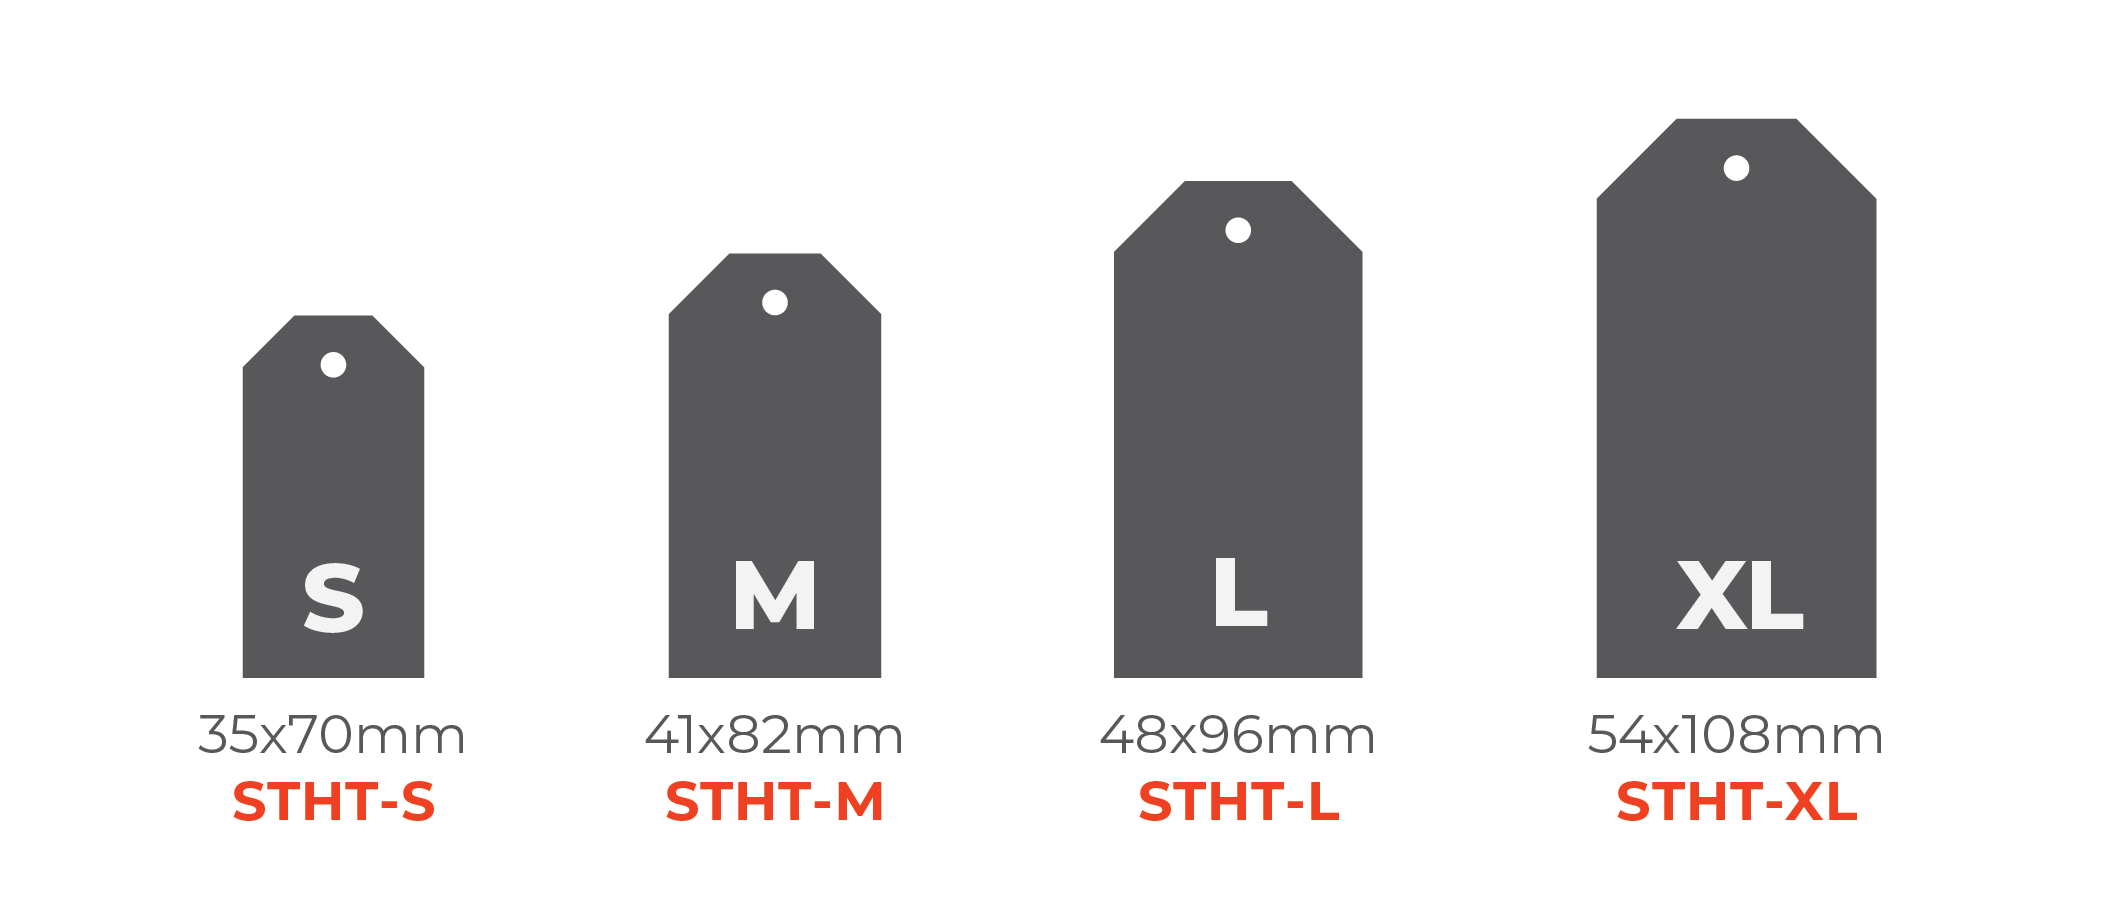 Double Pasted Hang Tags - Standard Tags 0x0mm 01 Image